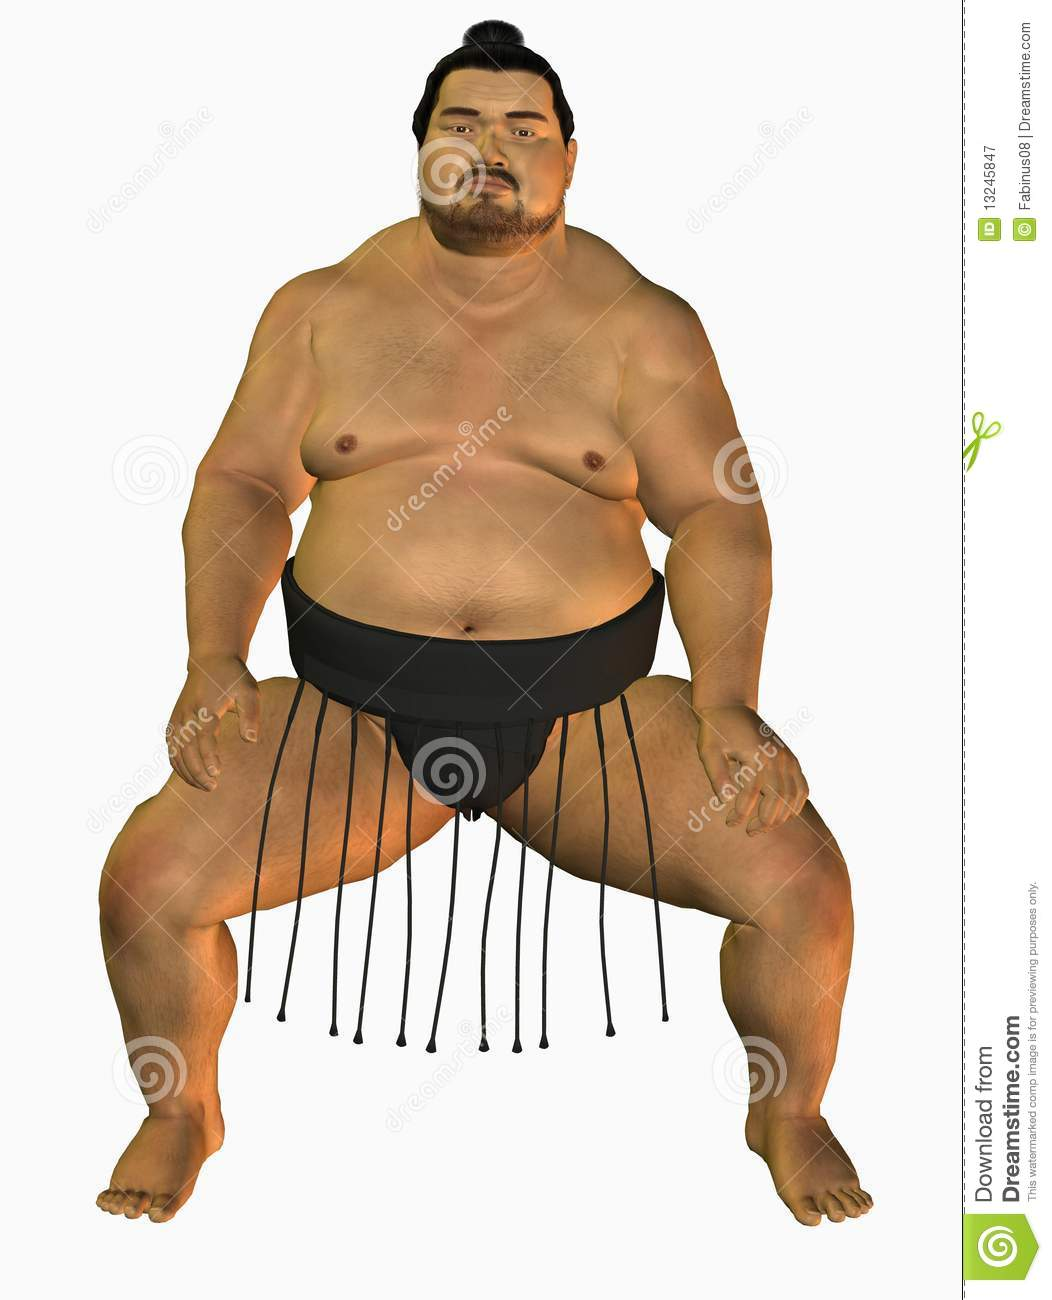 Sumo Wrestler Royalty Free Stock Photography - Image: 13245847